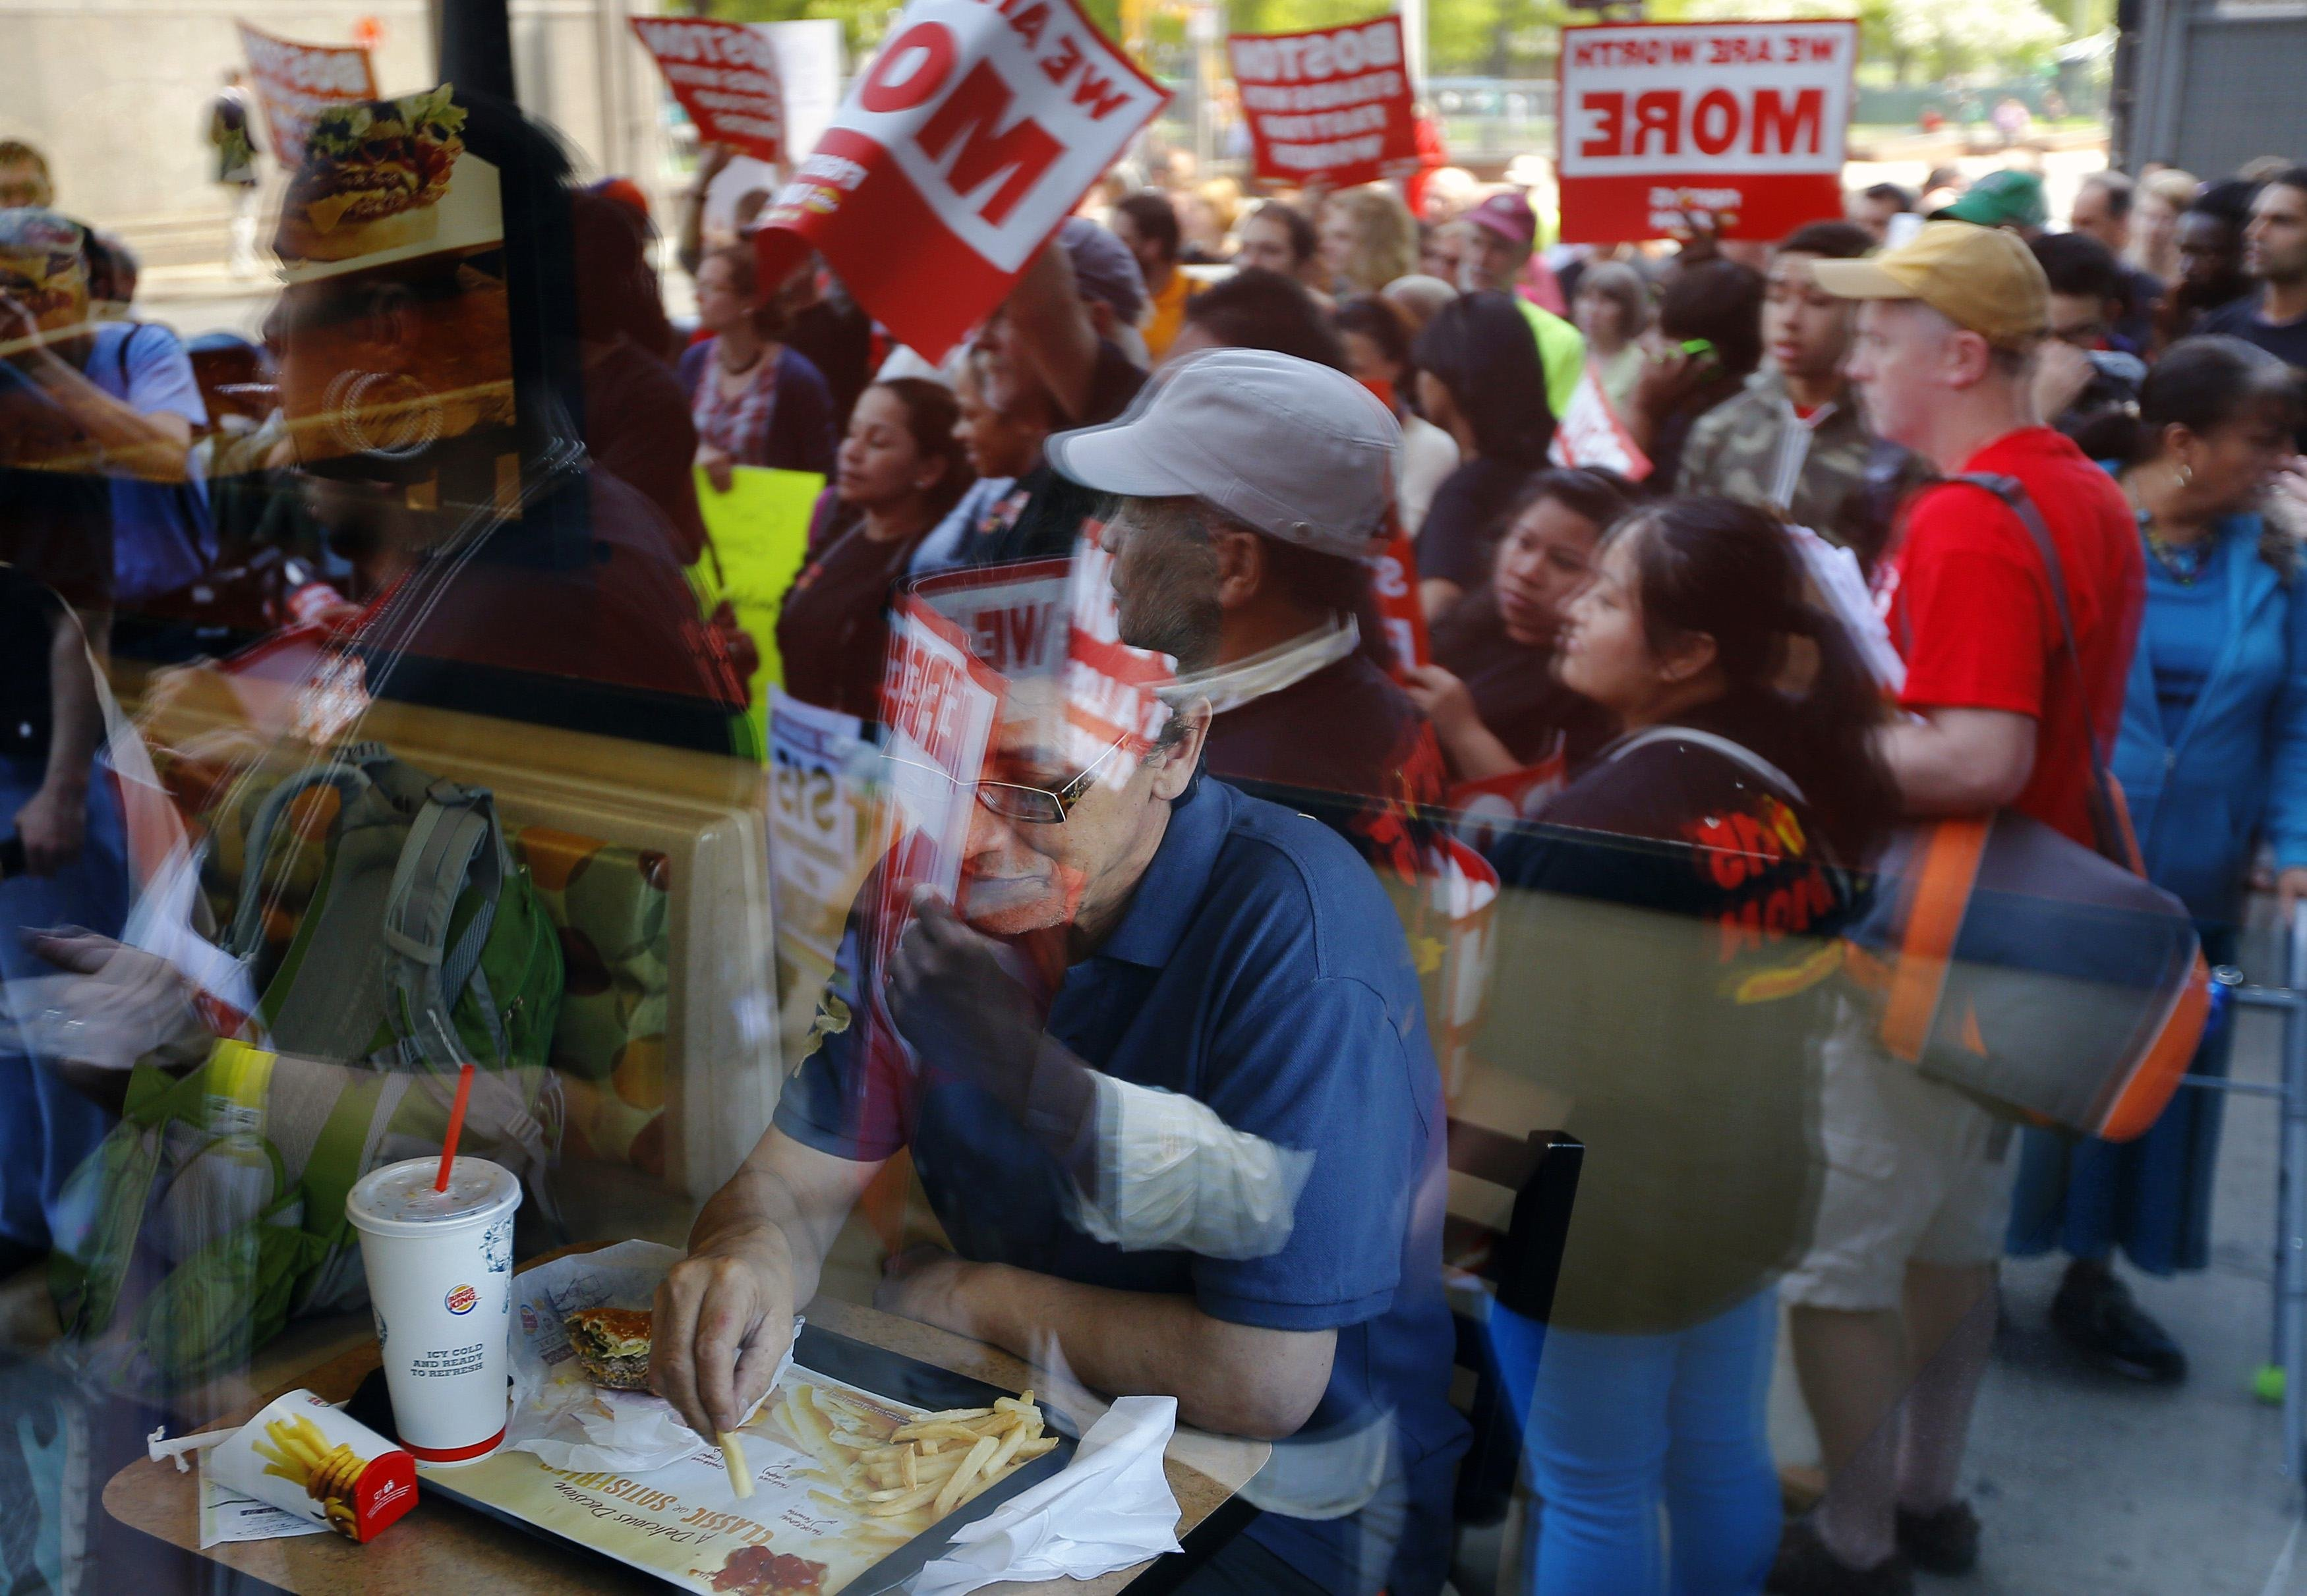 <b>Boston:</b> Demonstrators are reflected in the window as a man eats inside a Burger King restaurant on May 15, 2014.